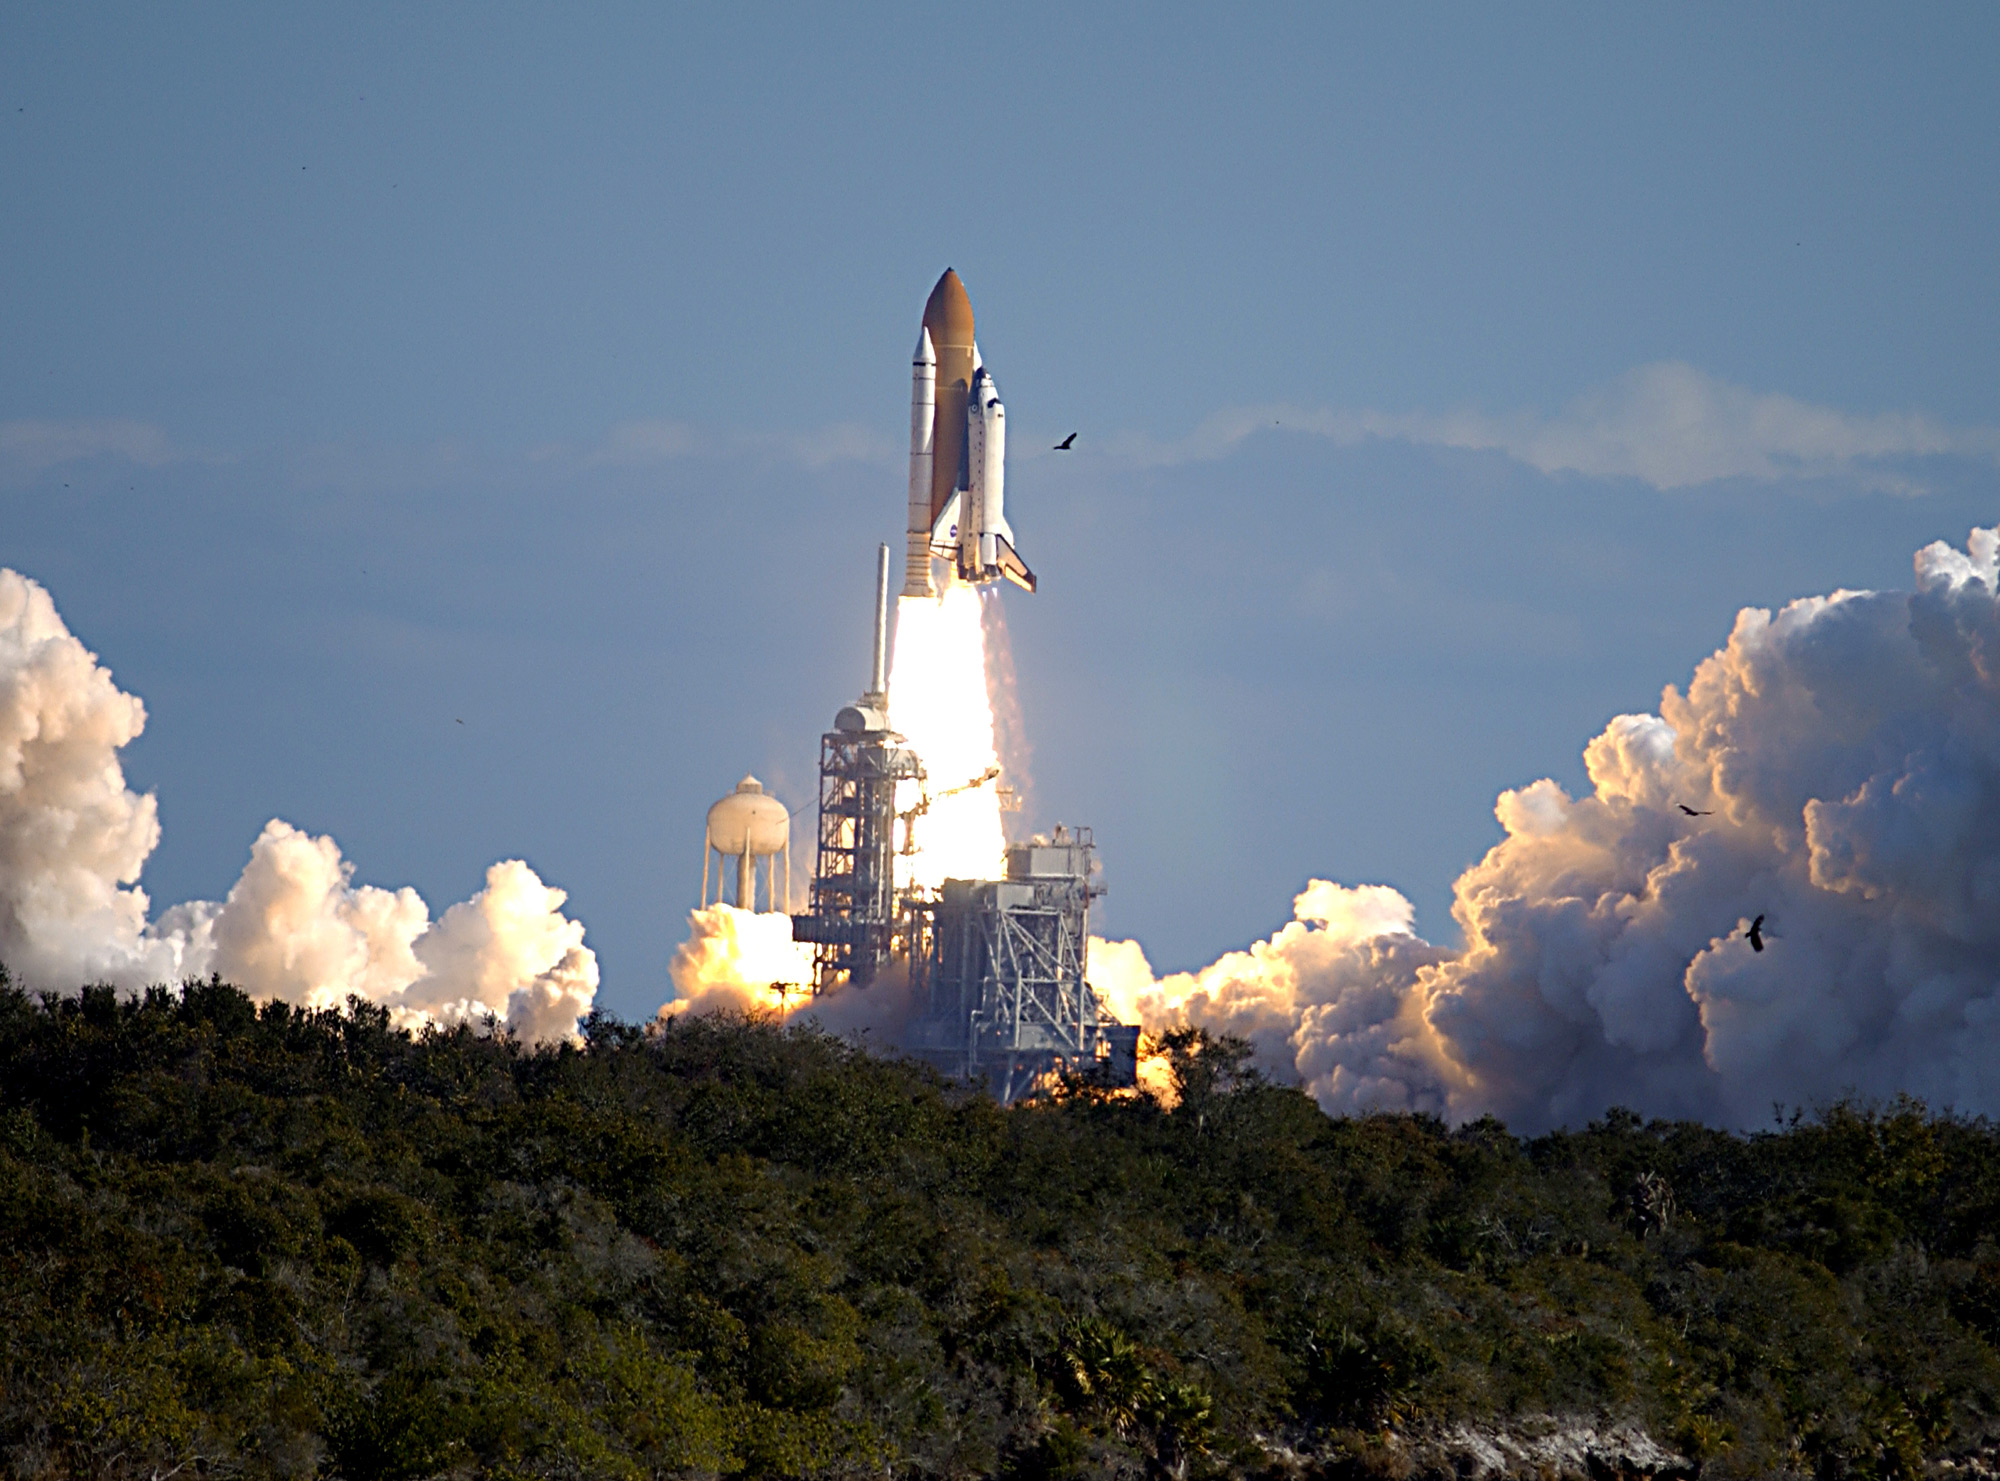 Columbia Launches on STS-107 Mission